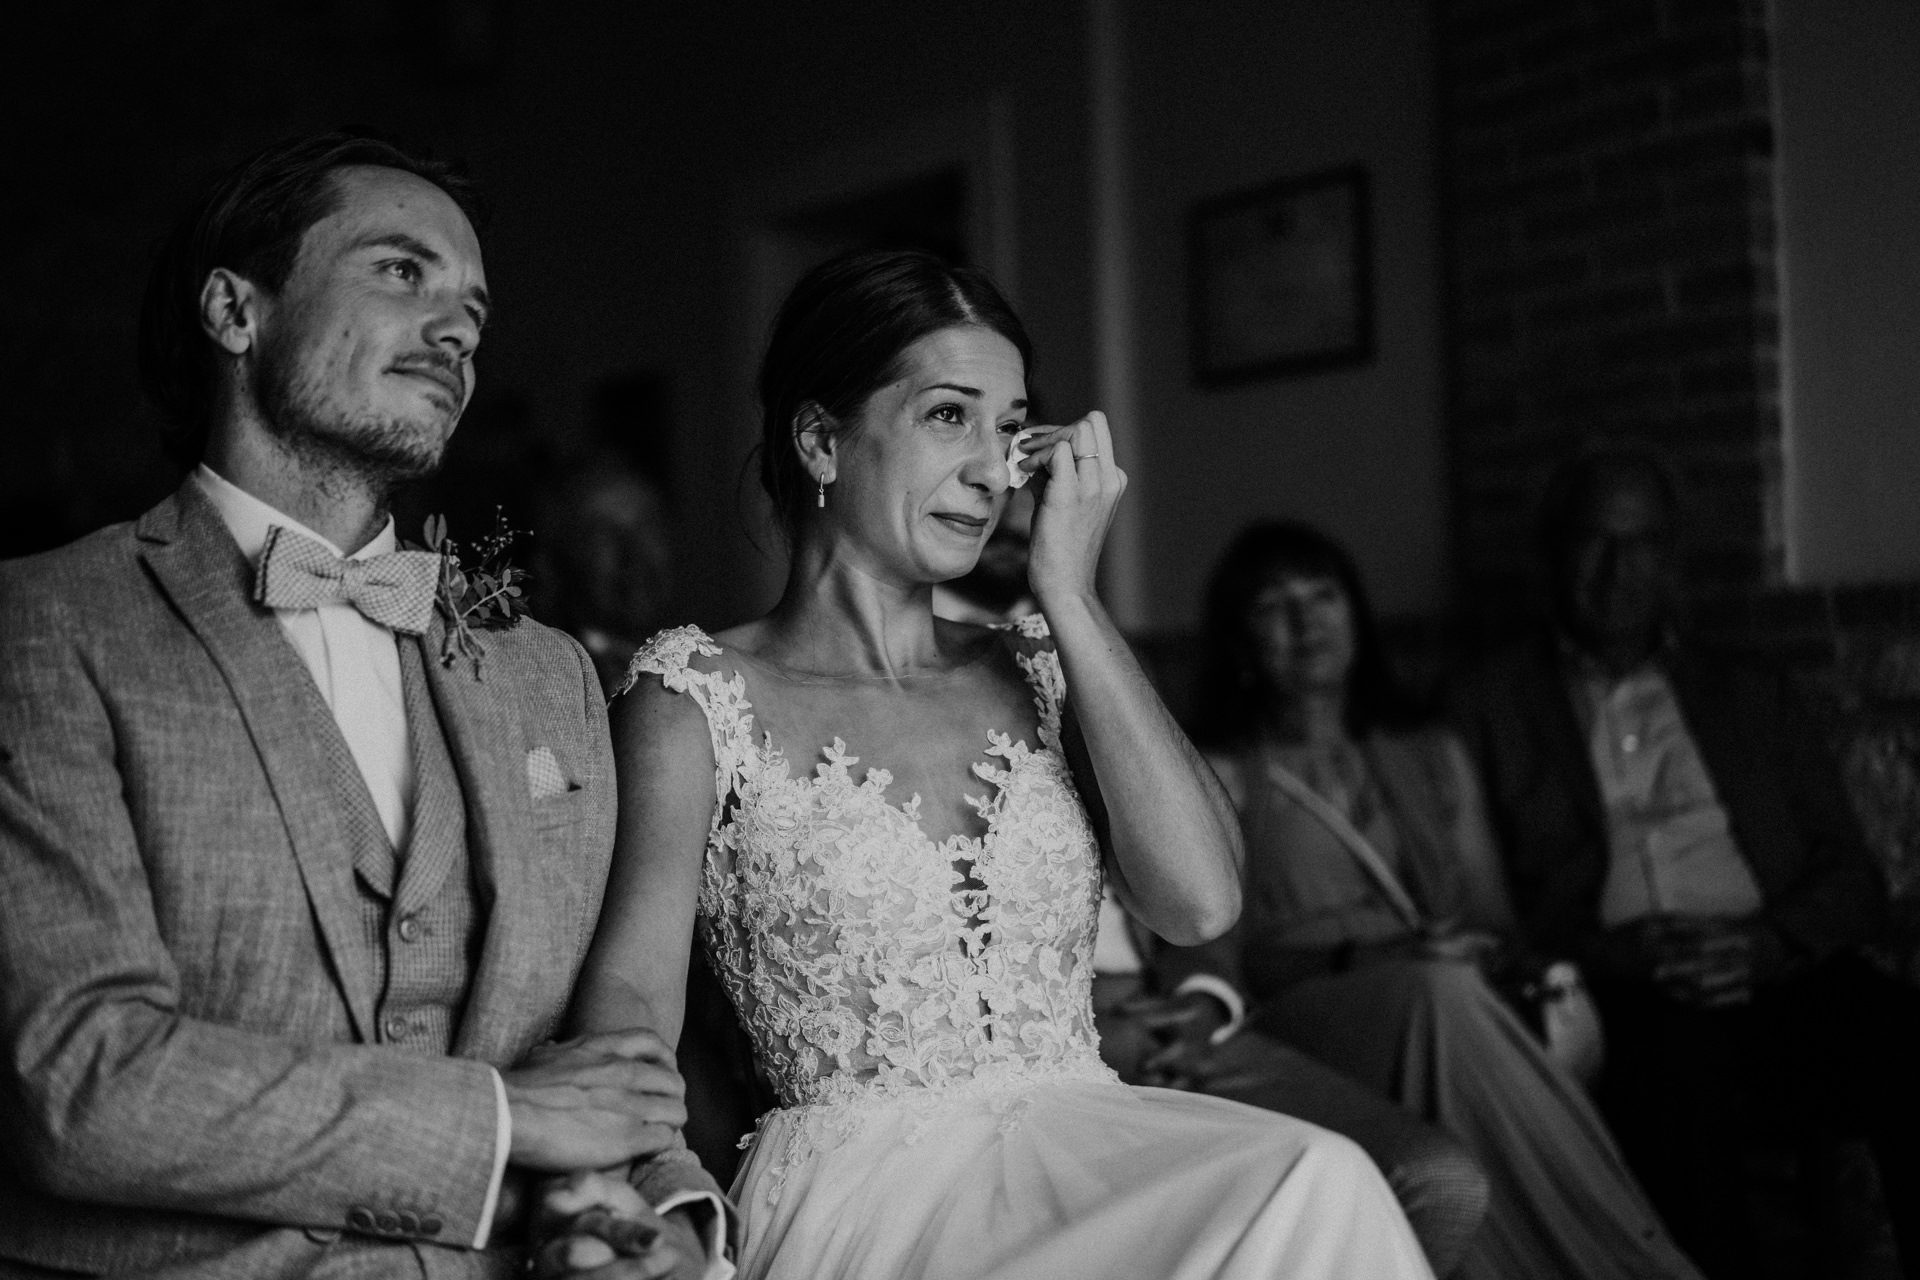 Il Rigo Farmhouse Elopement Image from Tuscany Val d'Orcia   The bride displays a moment of emotion